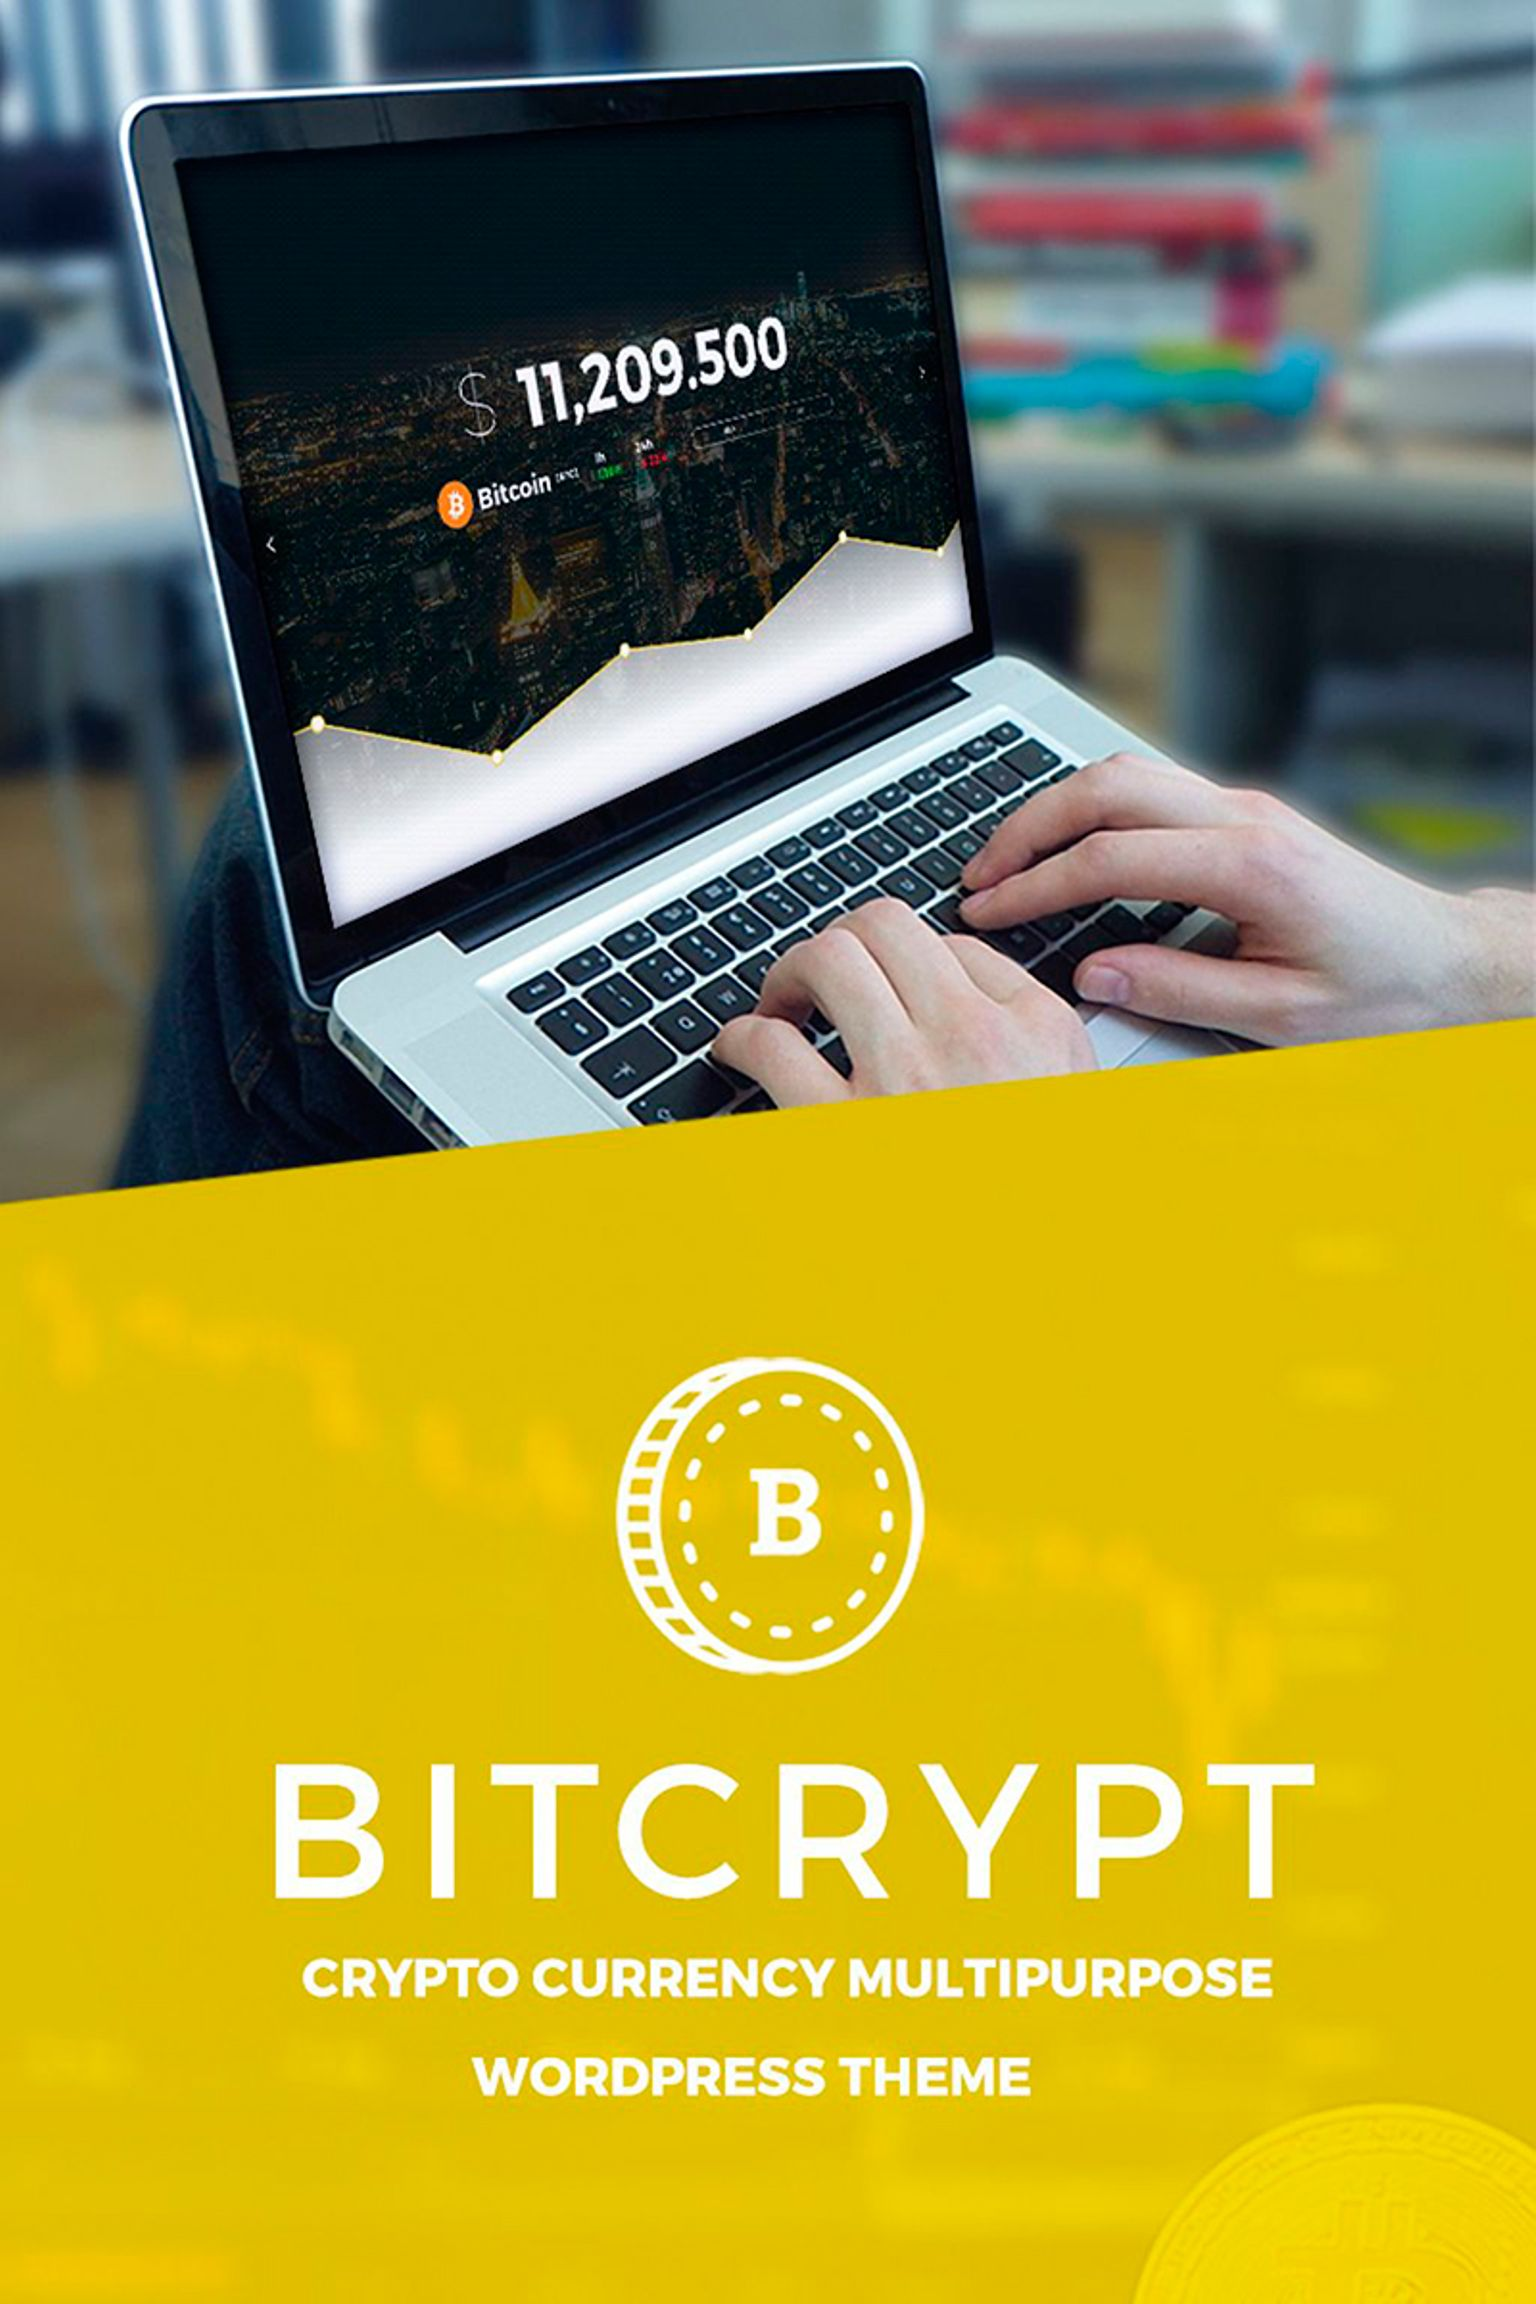 Bitcrypt - Bitcoin & Cryptocurrency WordPress Theme